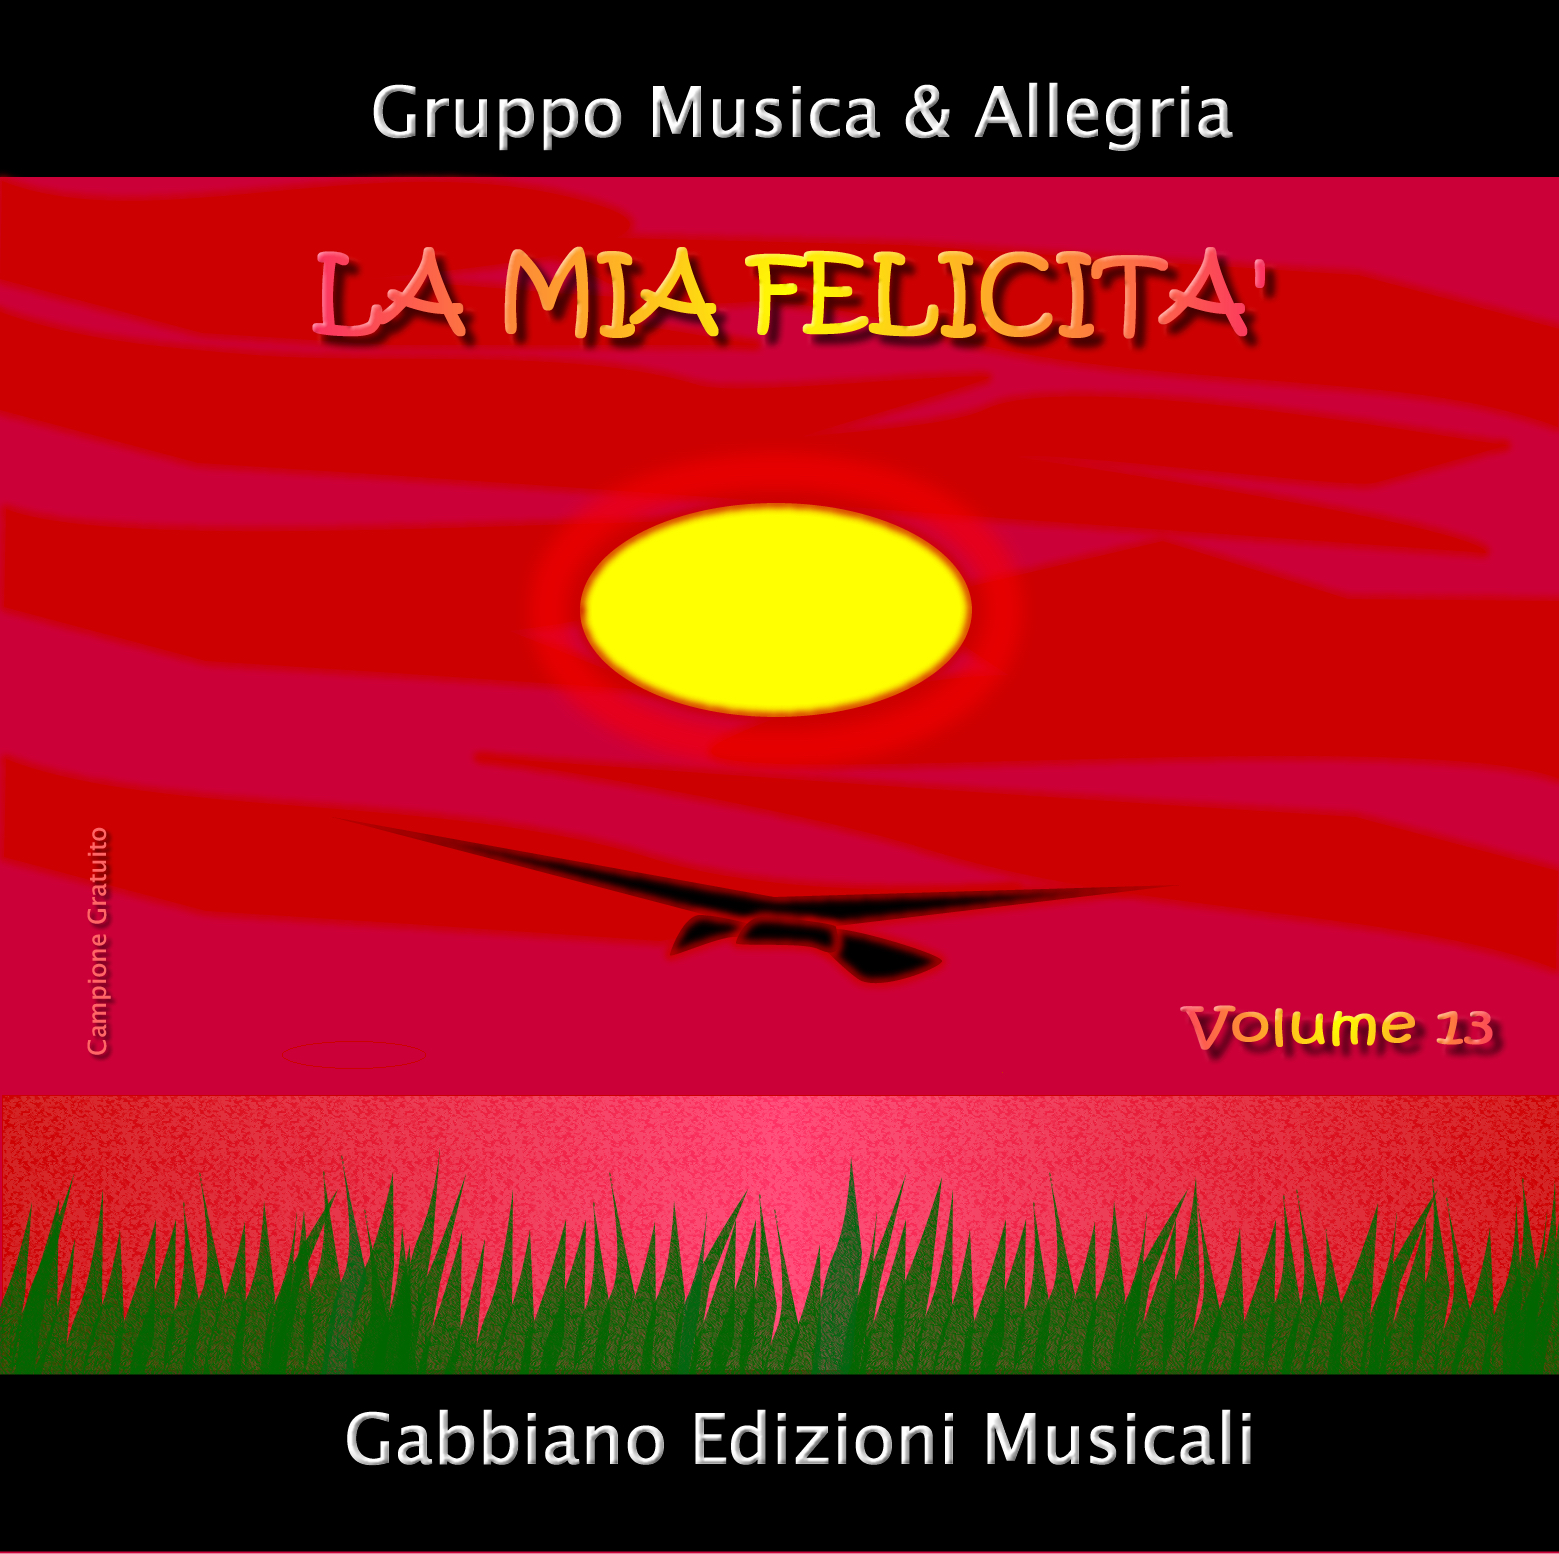 GBN113CD - LA MIA FELICITA'  - Volume 13